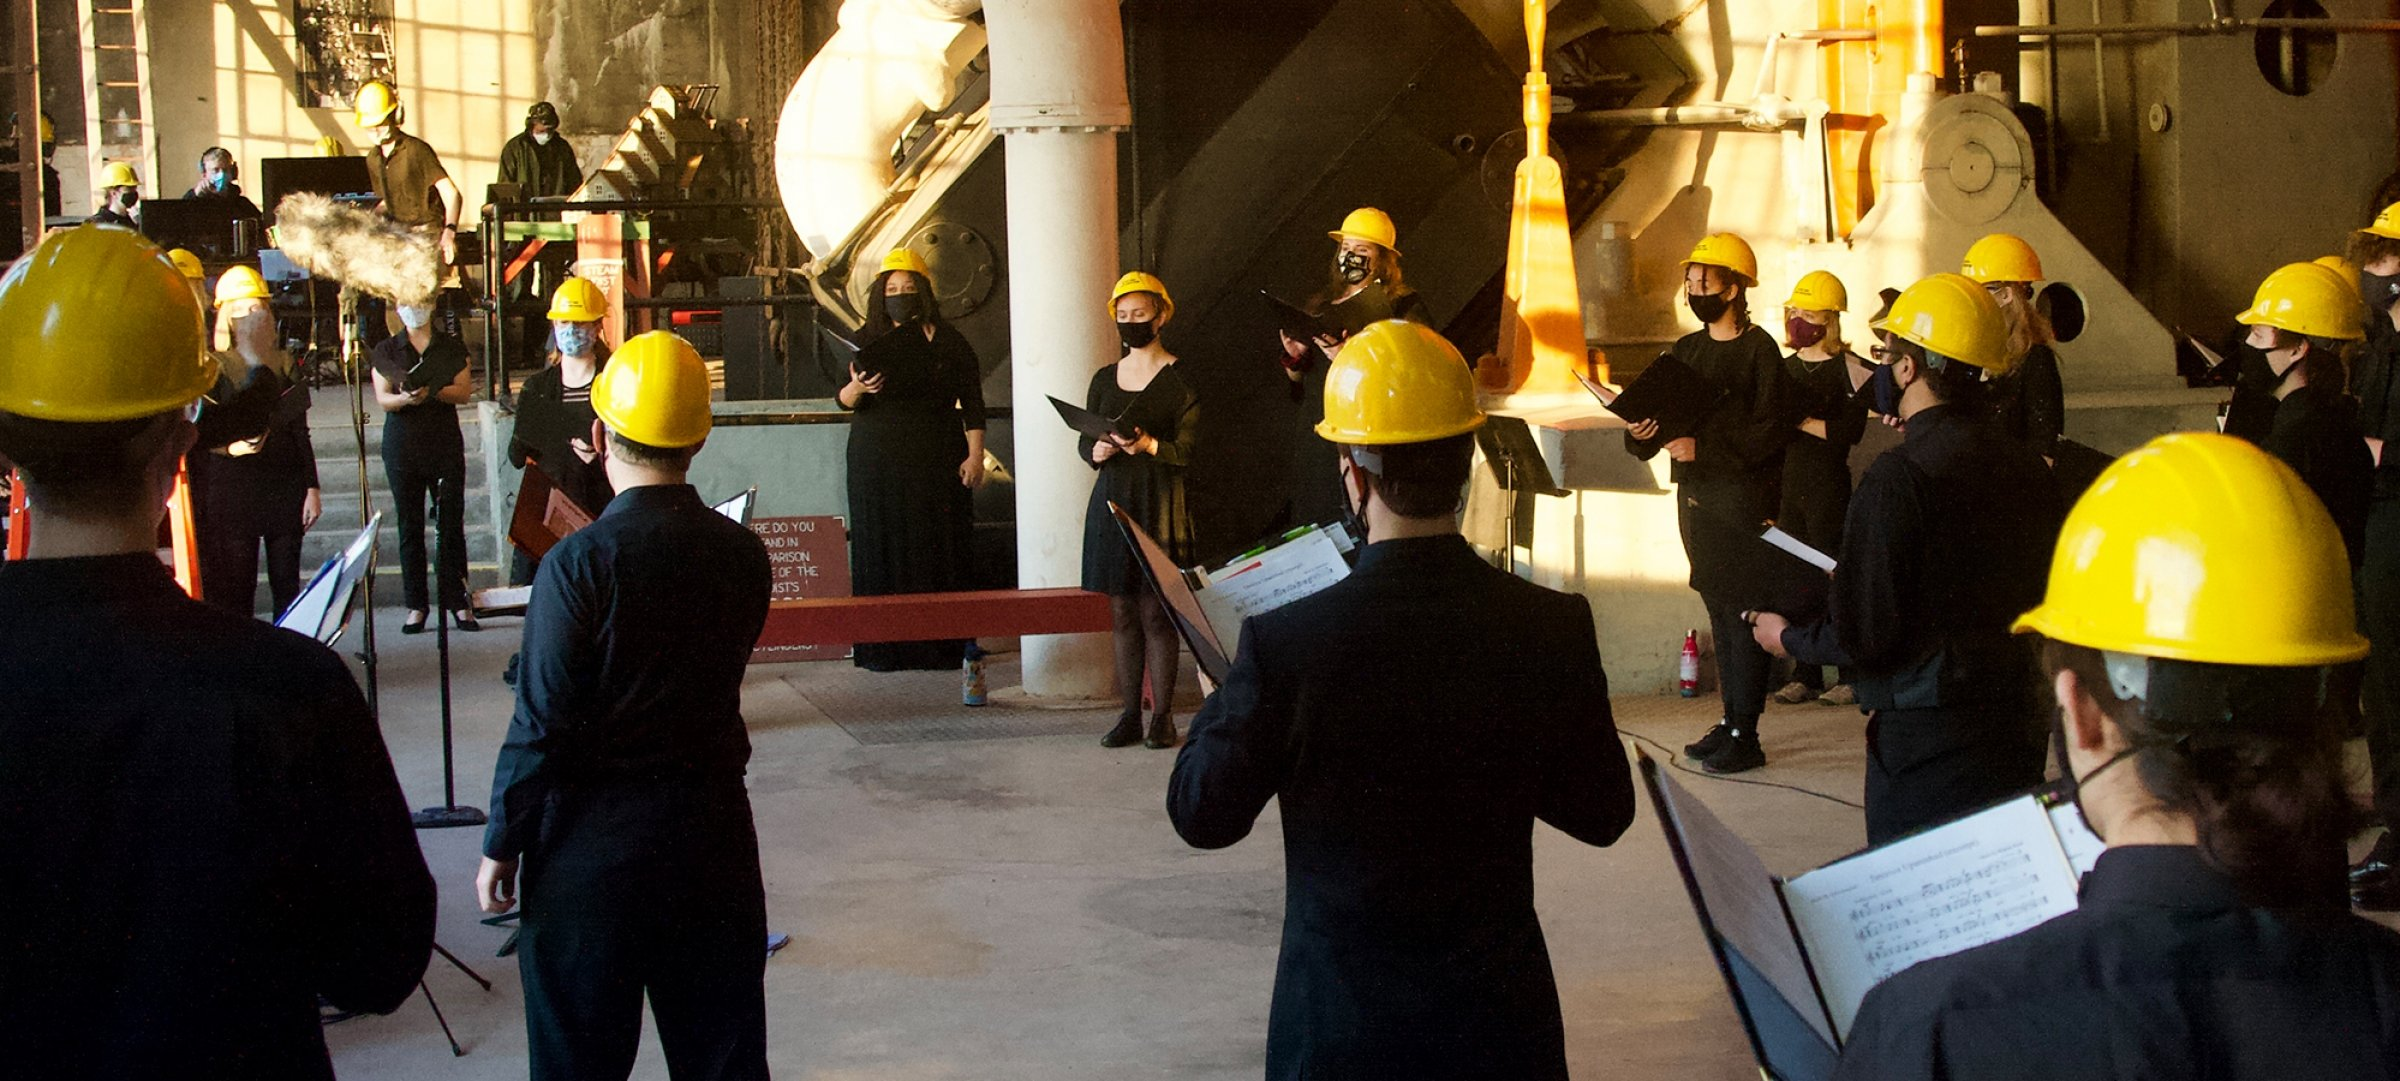 Singers wearing hardhats and face coverings in a Quincy Mine building.